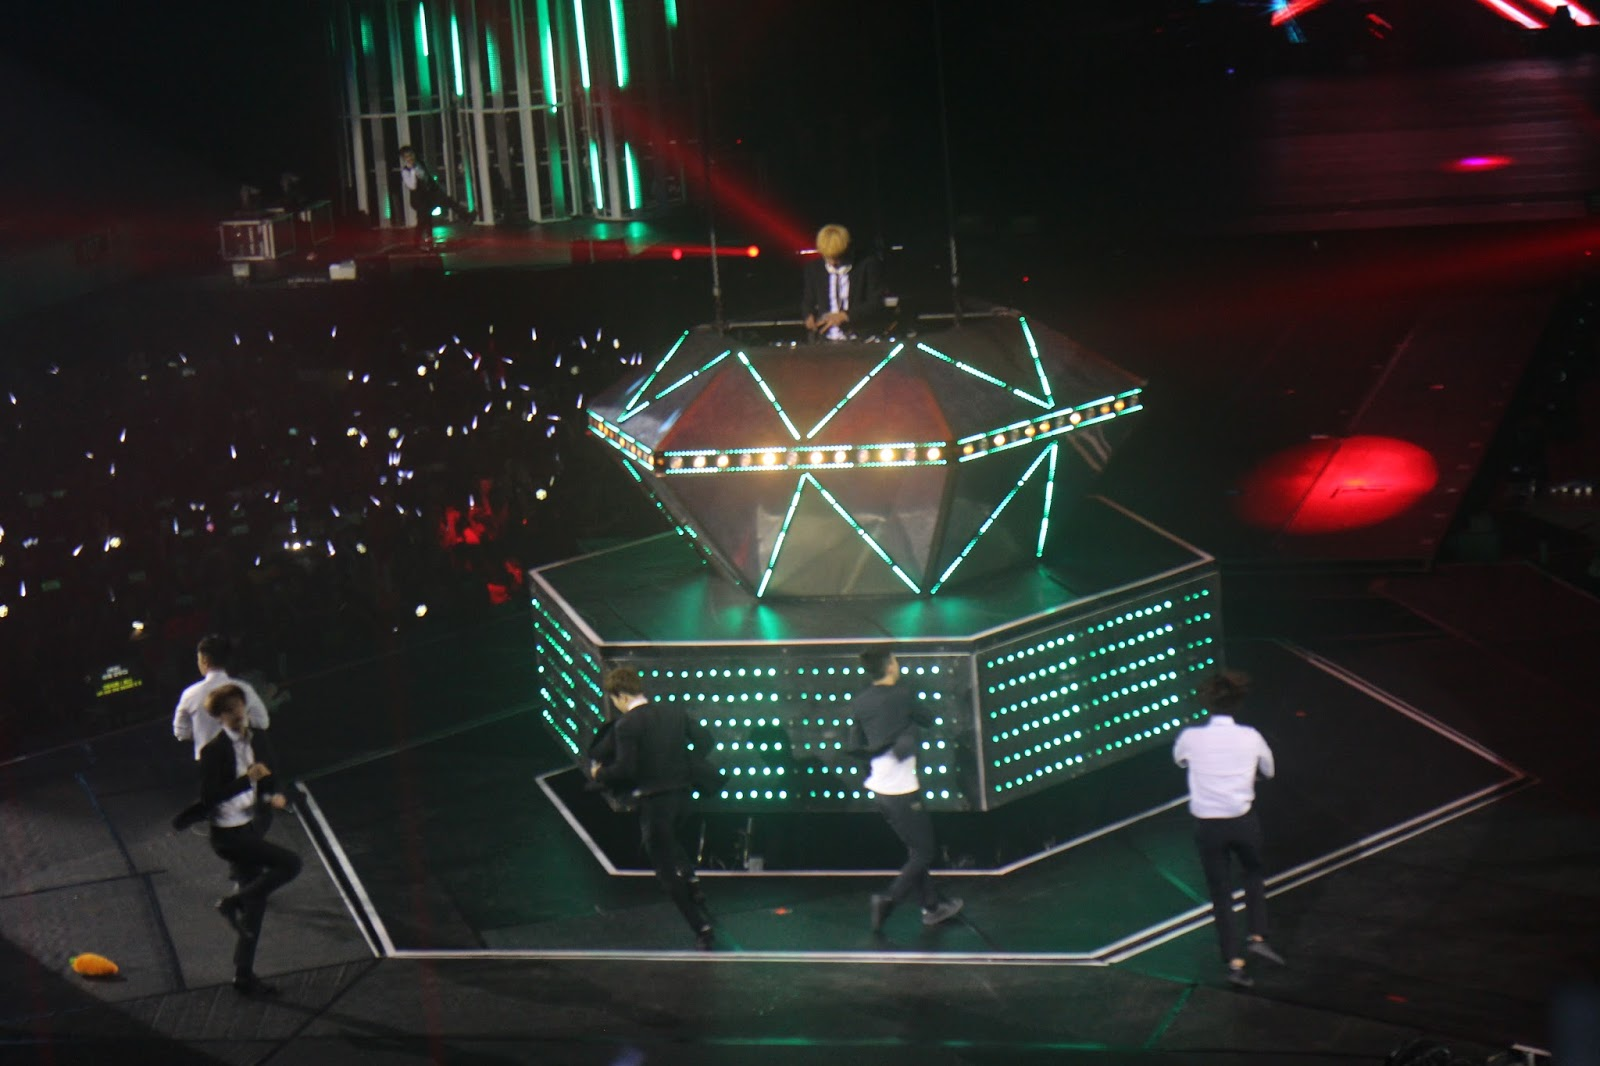 Google theme kpop exo - Last January 23 And 24 Pulp Live World Dream Maker Entertainment S M Entertainment And Glove Telecom Held The Biggest Kpop Concert In Manila Exo